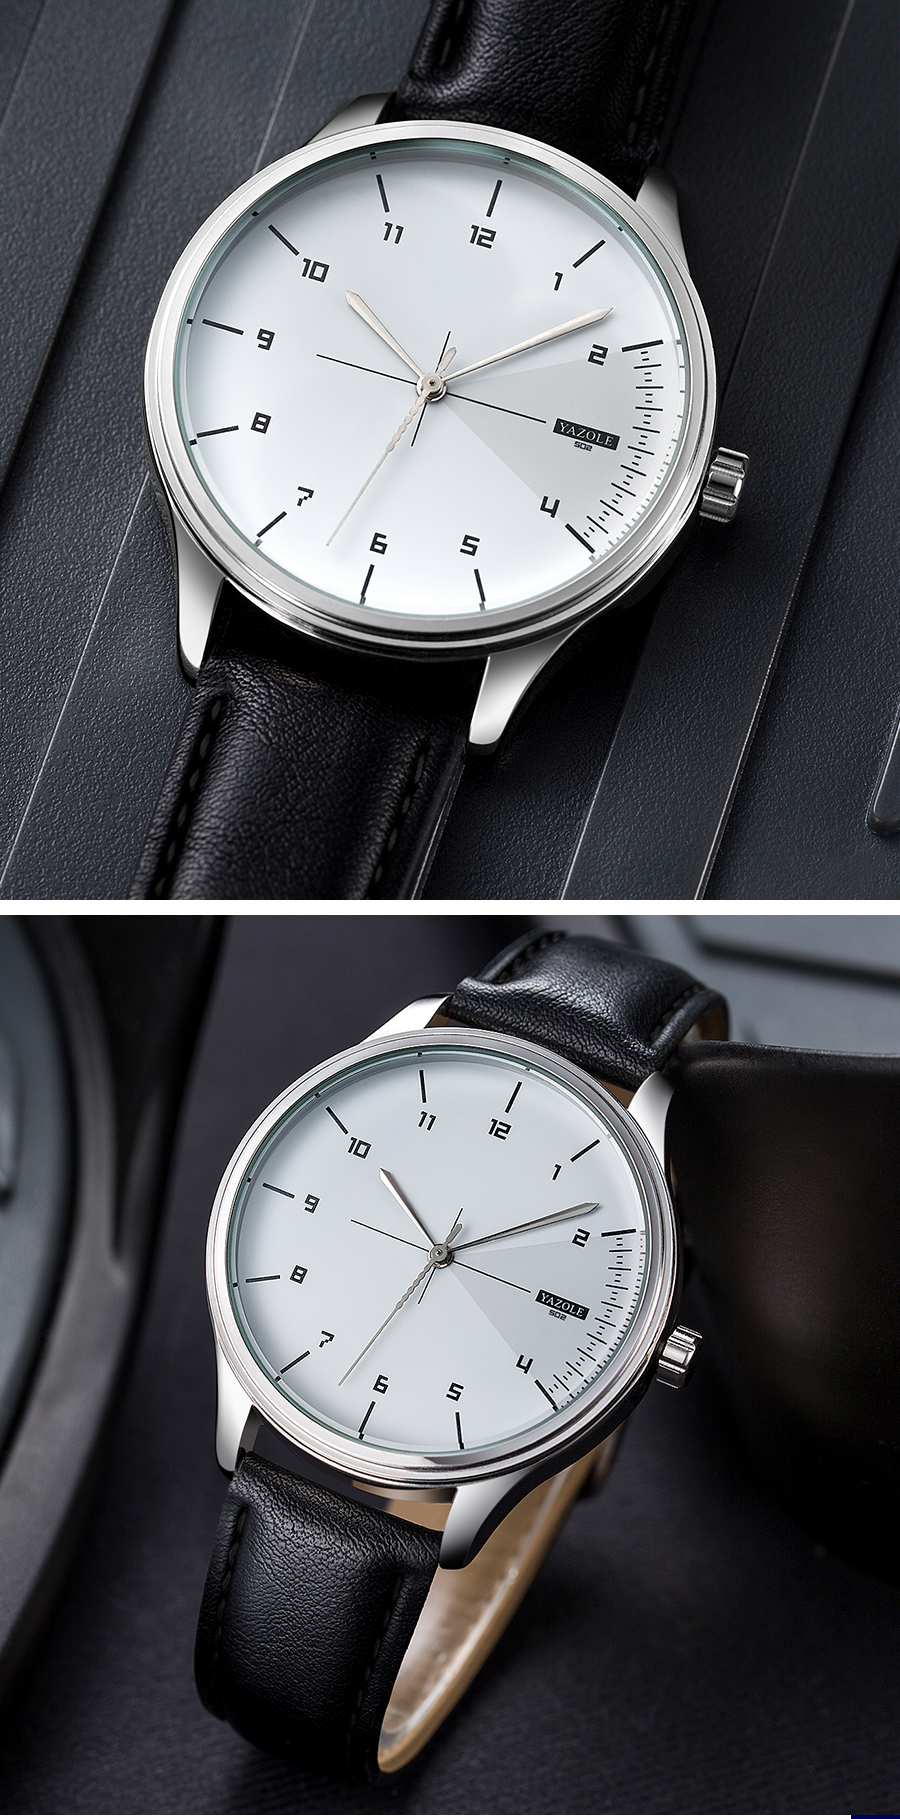 H94861c58f13f4bbab5c626ad090c4a9a1 Yazole Watch simple stylish business